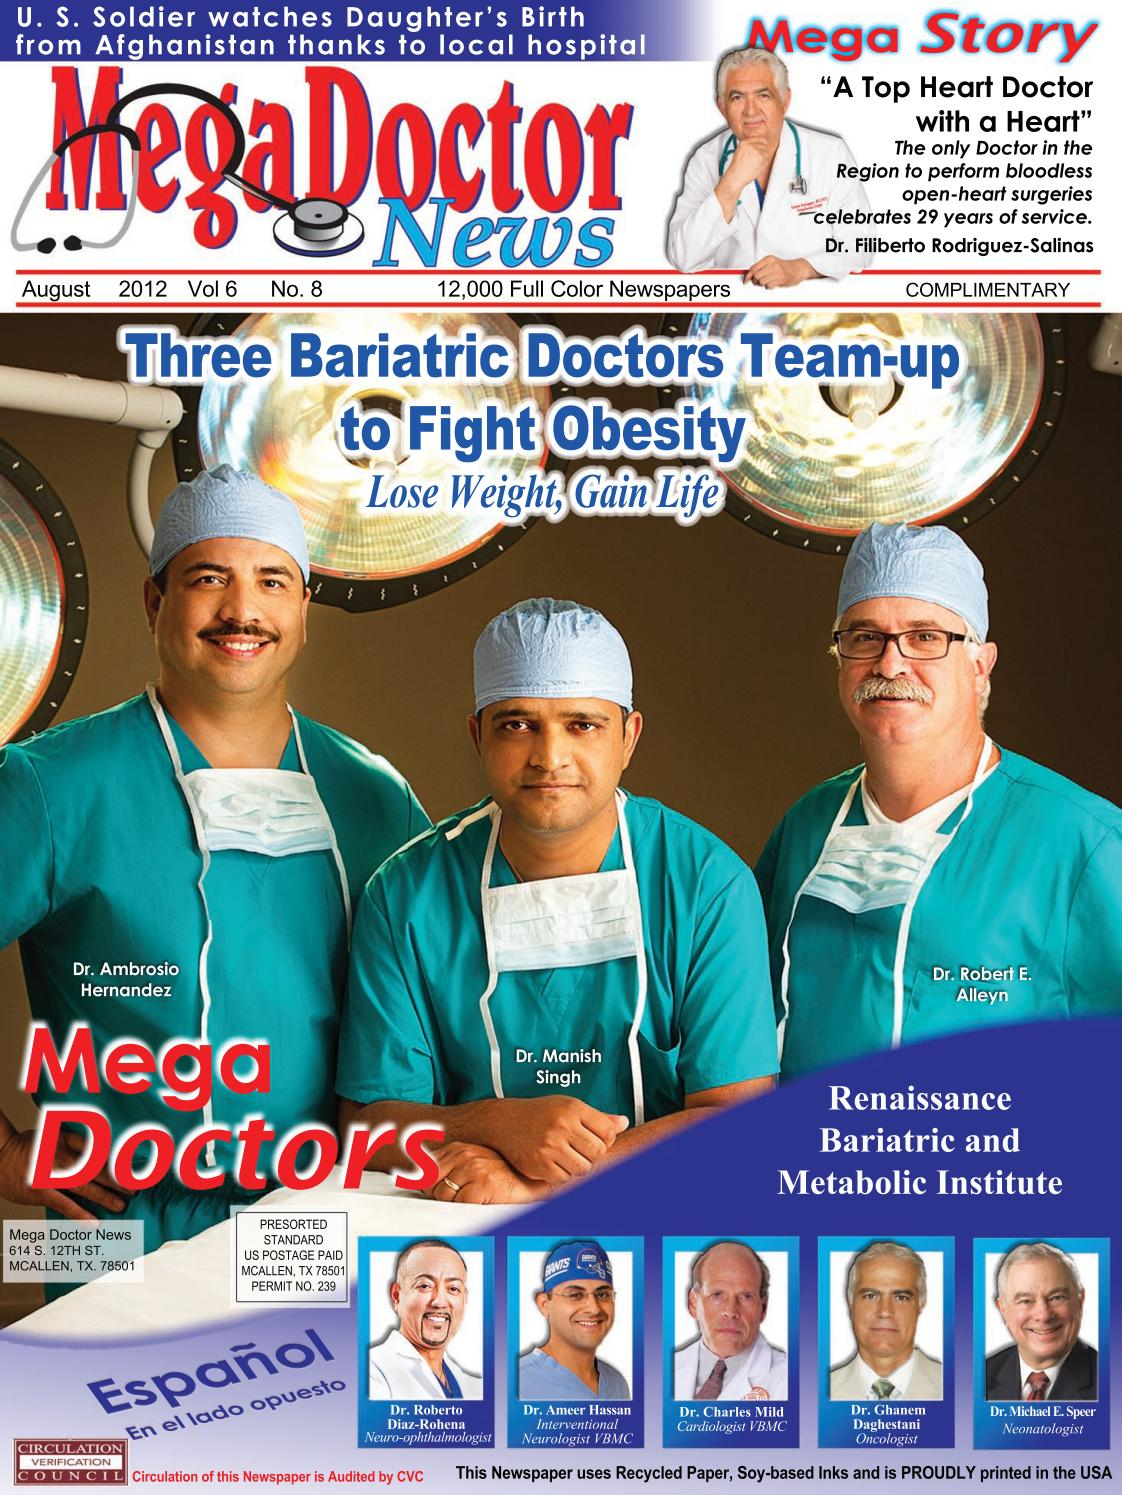 Mega Doctor News August 2012 by Mega Doctor News - issuu